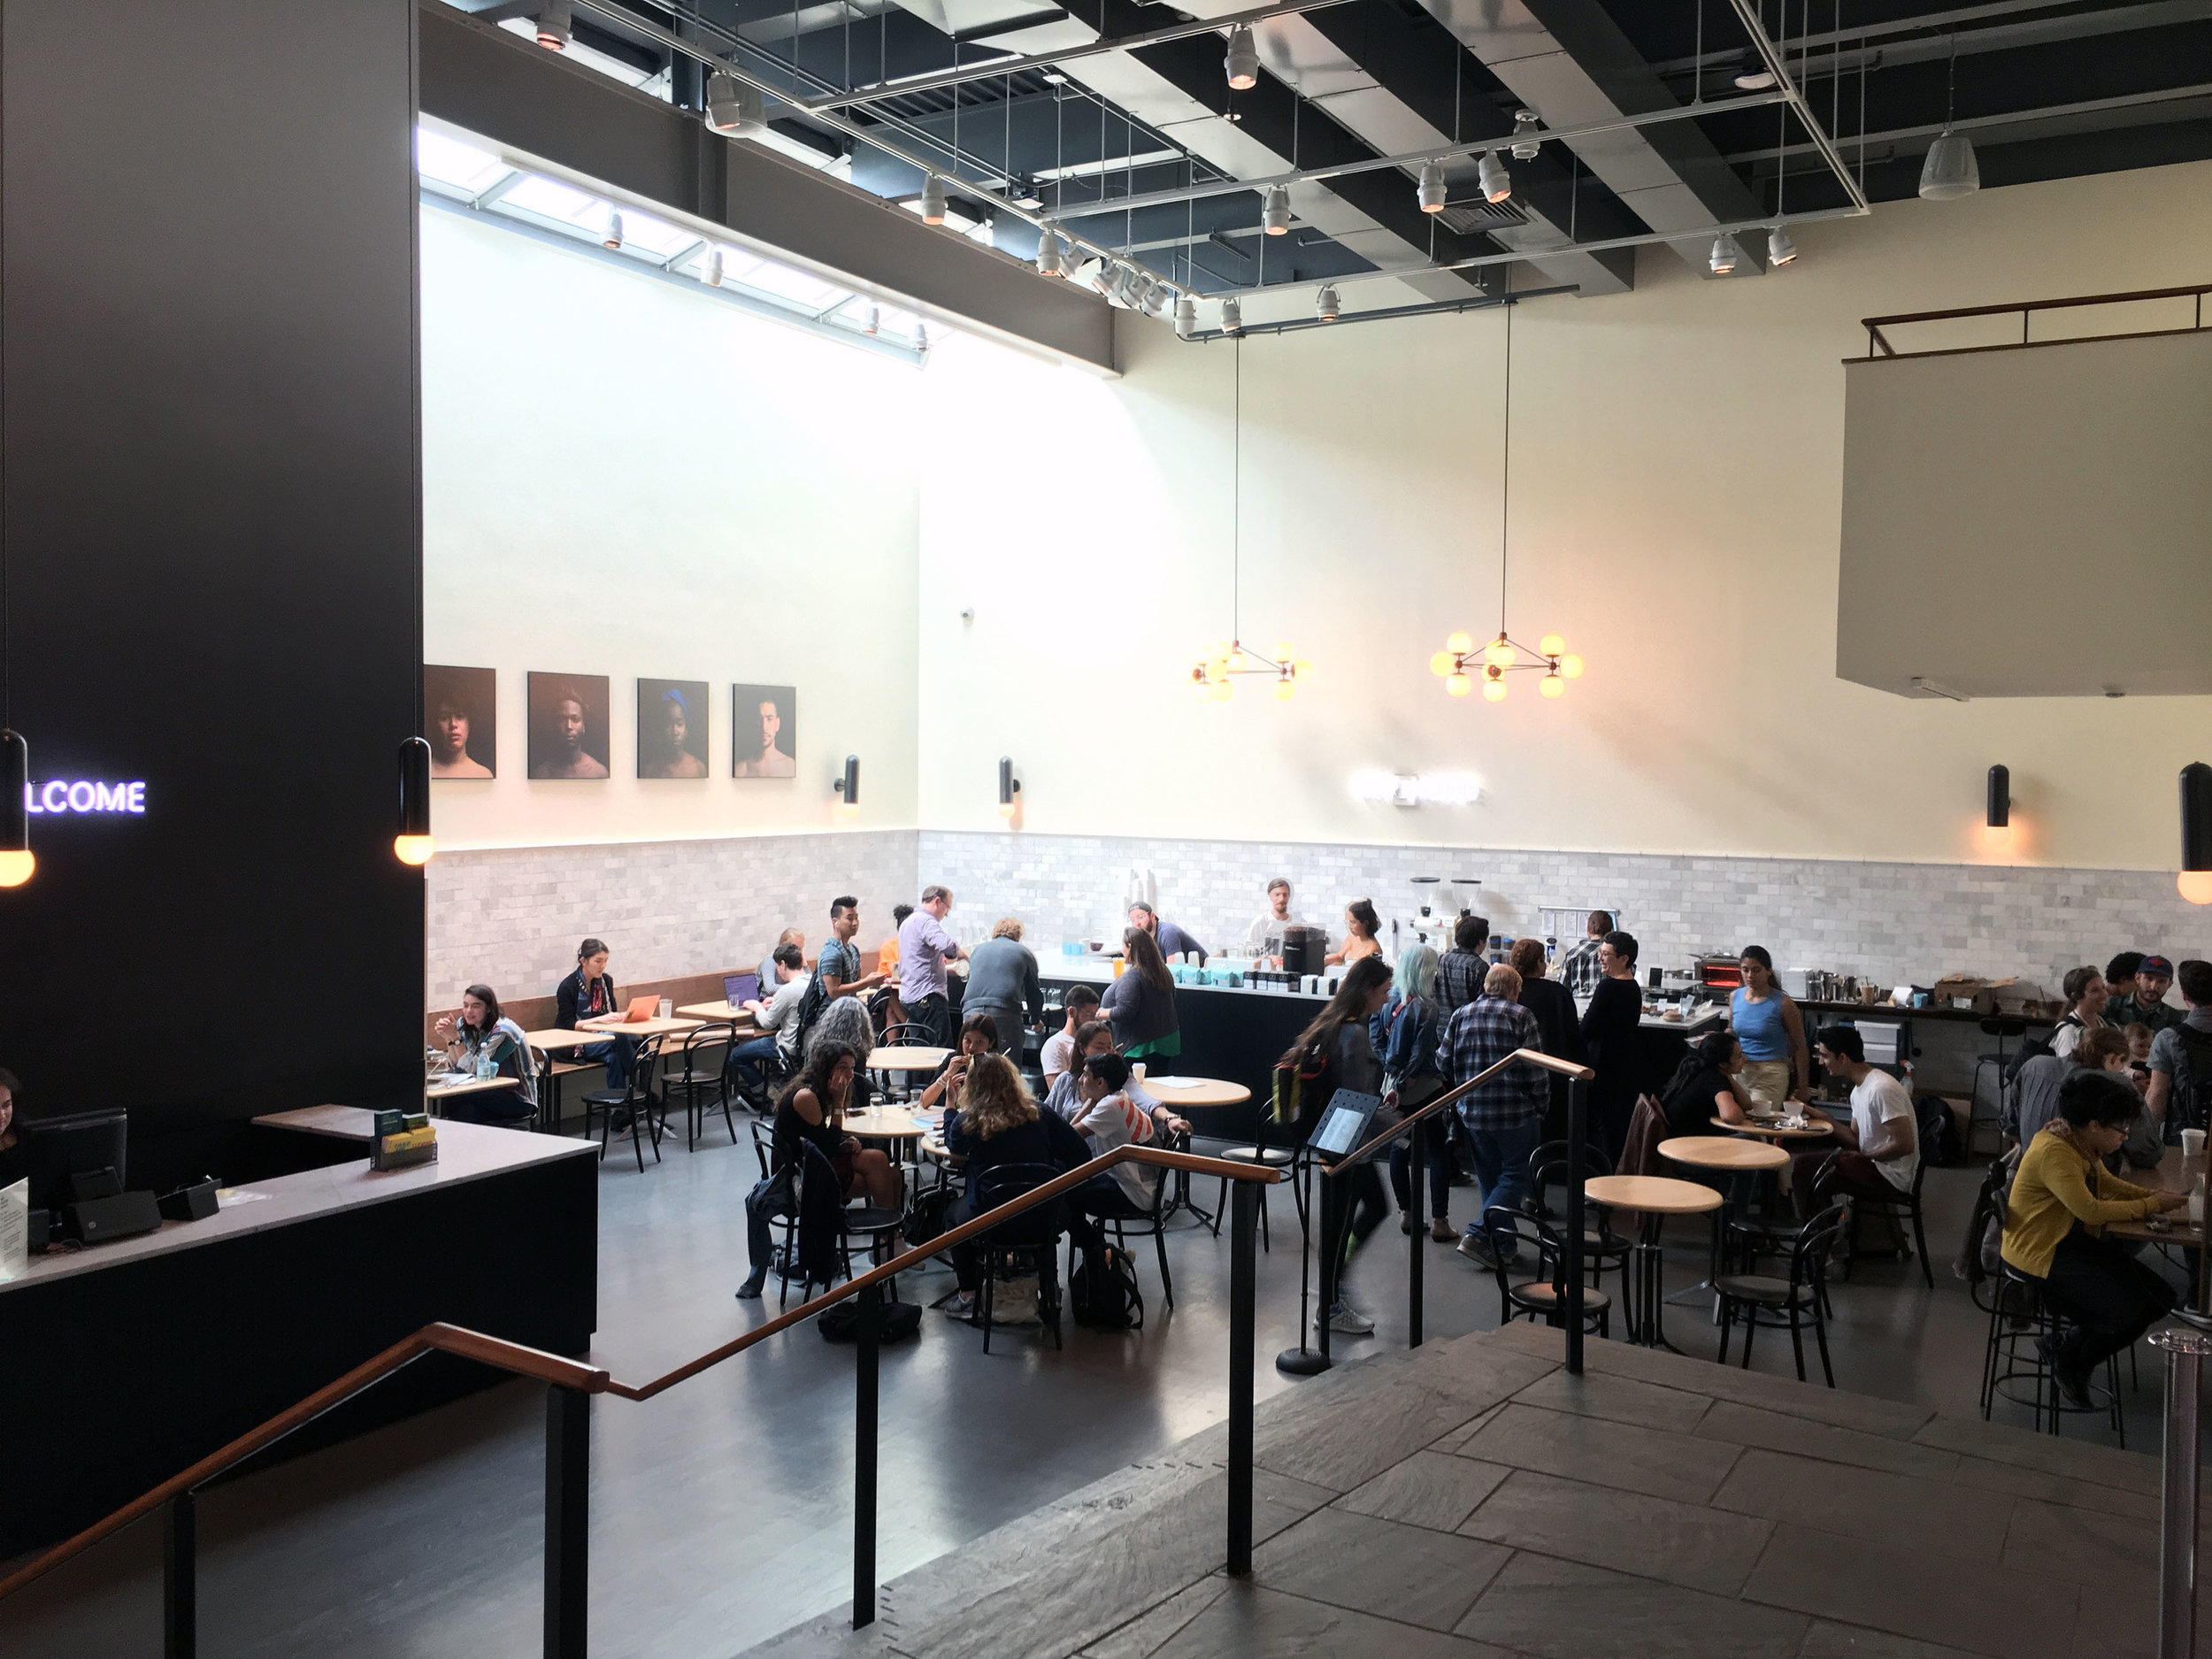 cafe-with-people-JF.jpg